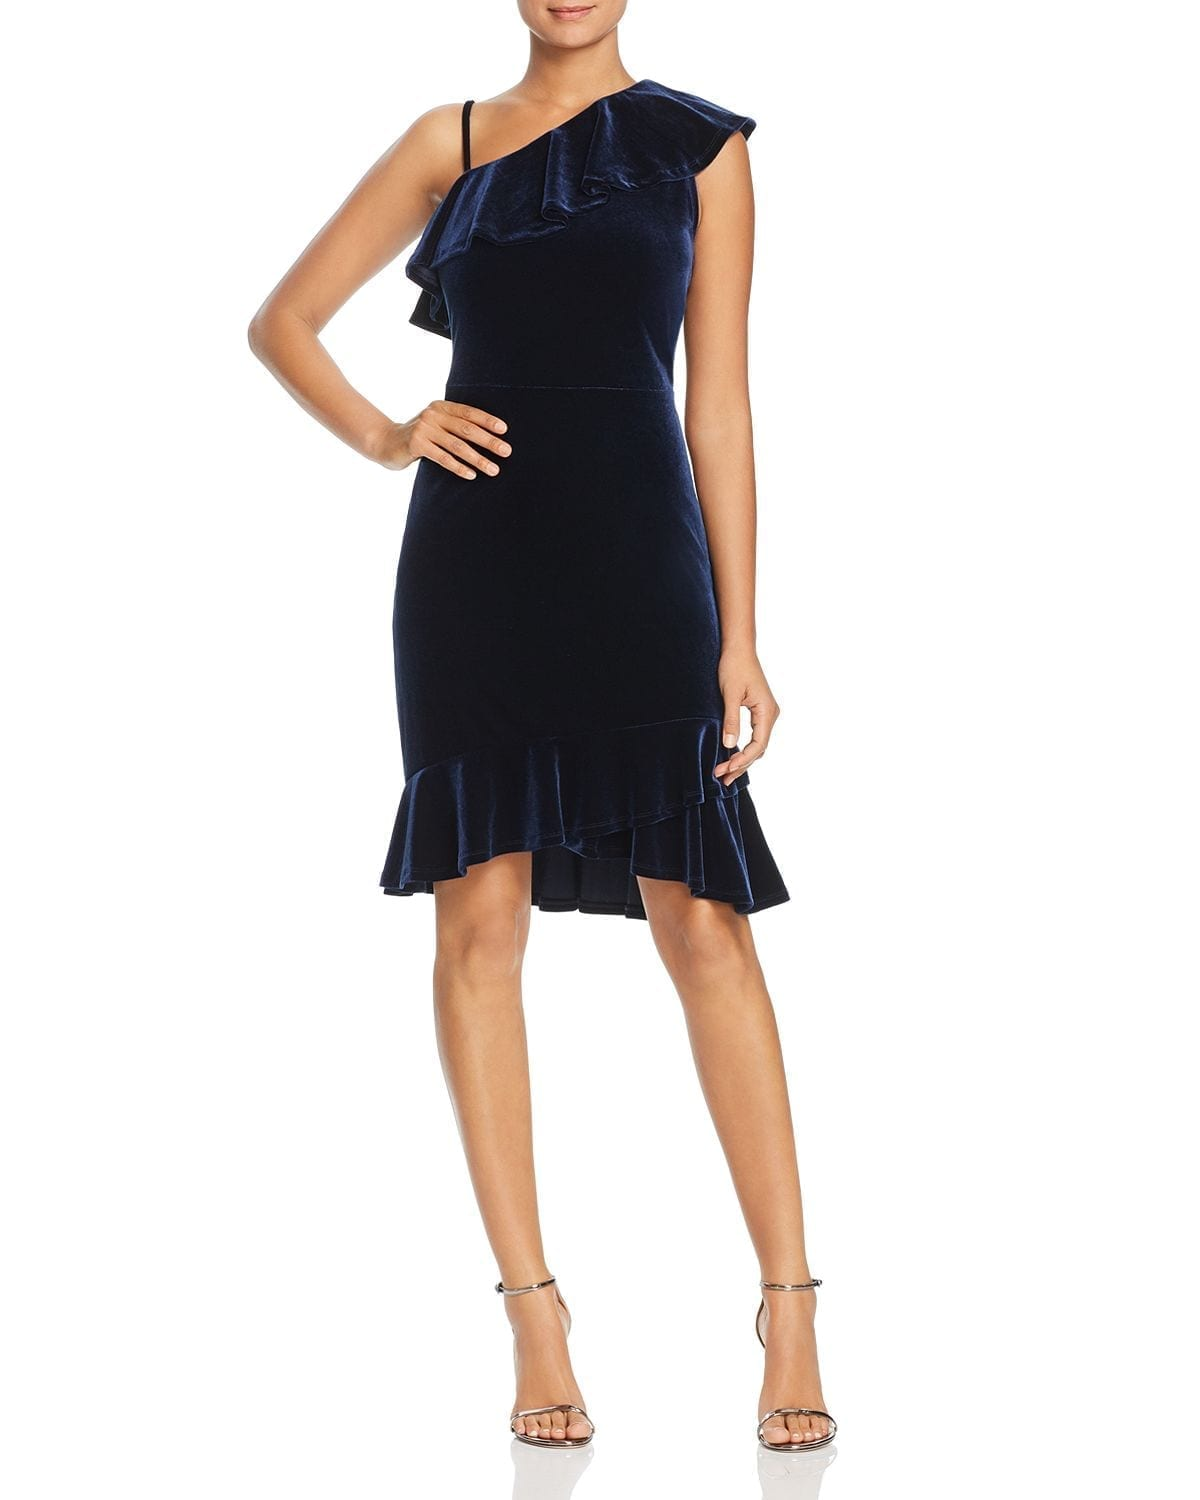 LEOTA Tereza Velvet One-Shoulder Navy Dress